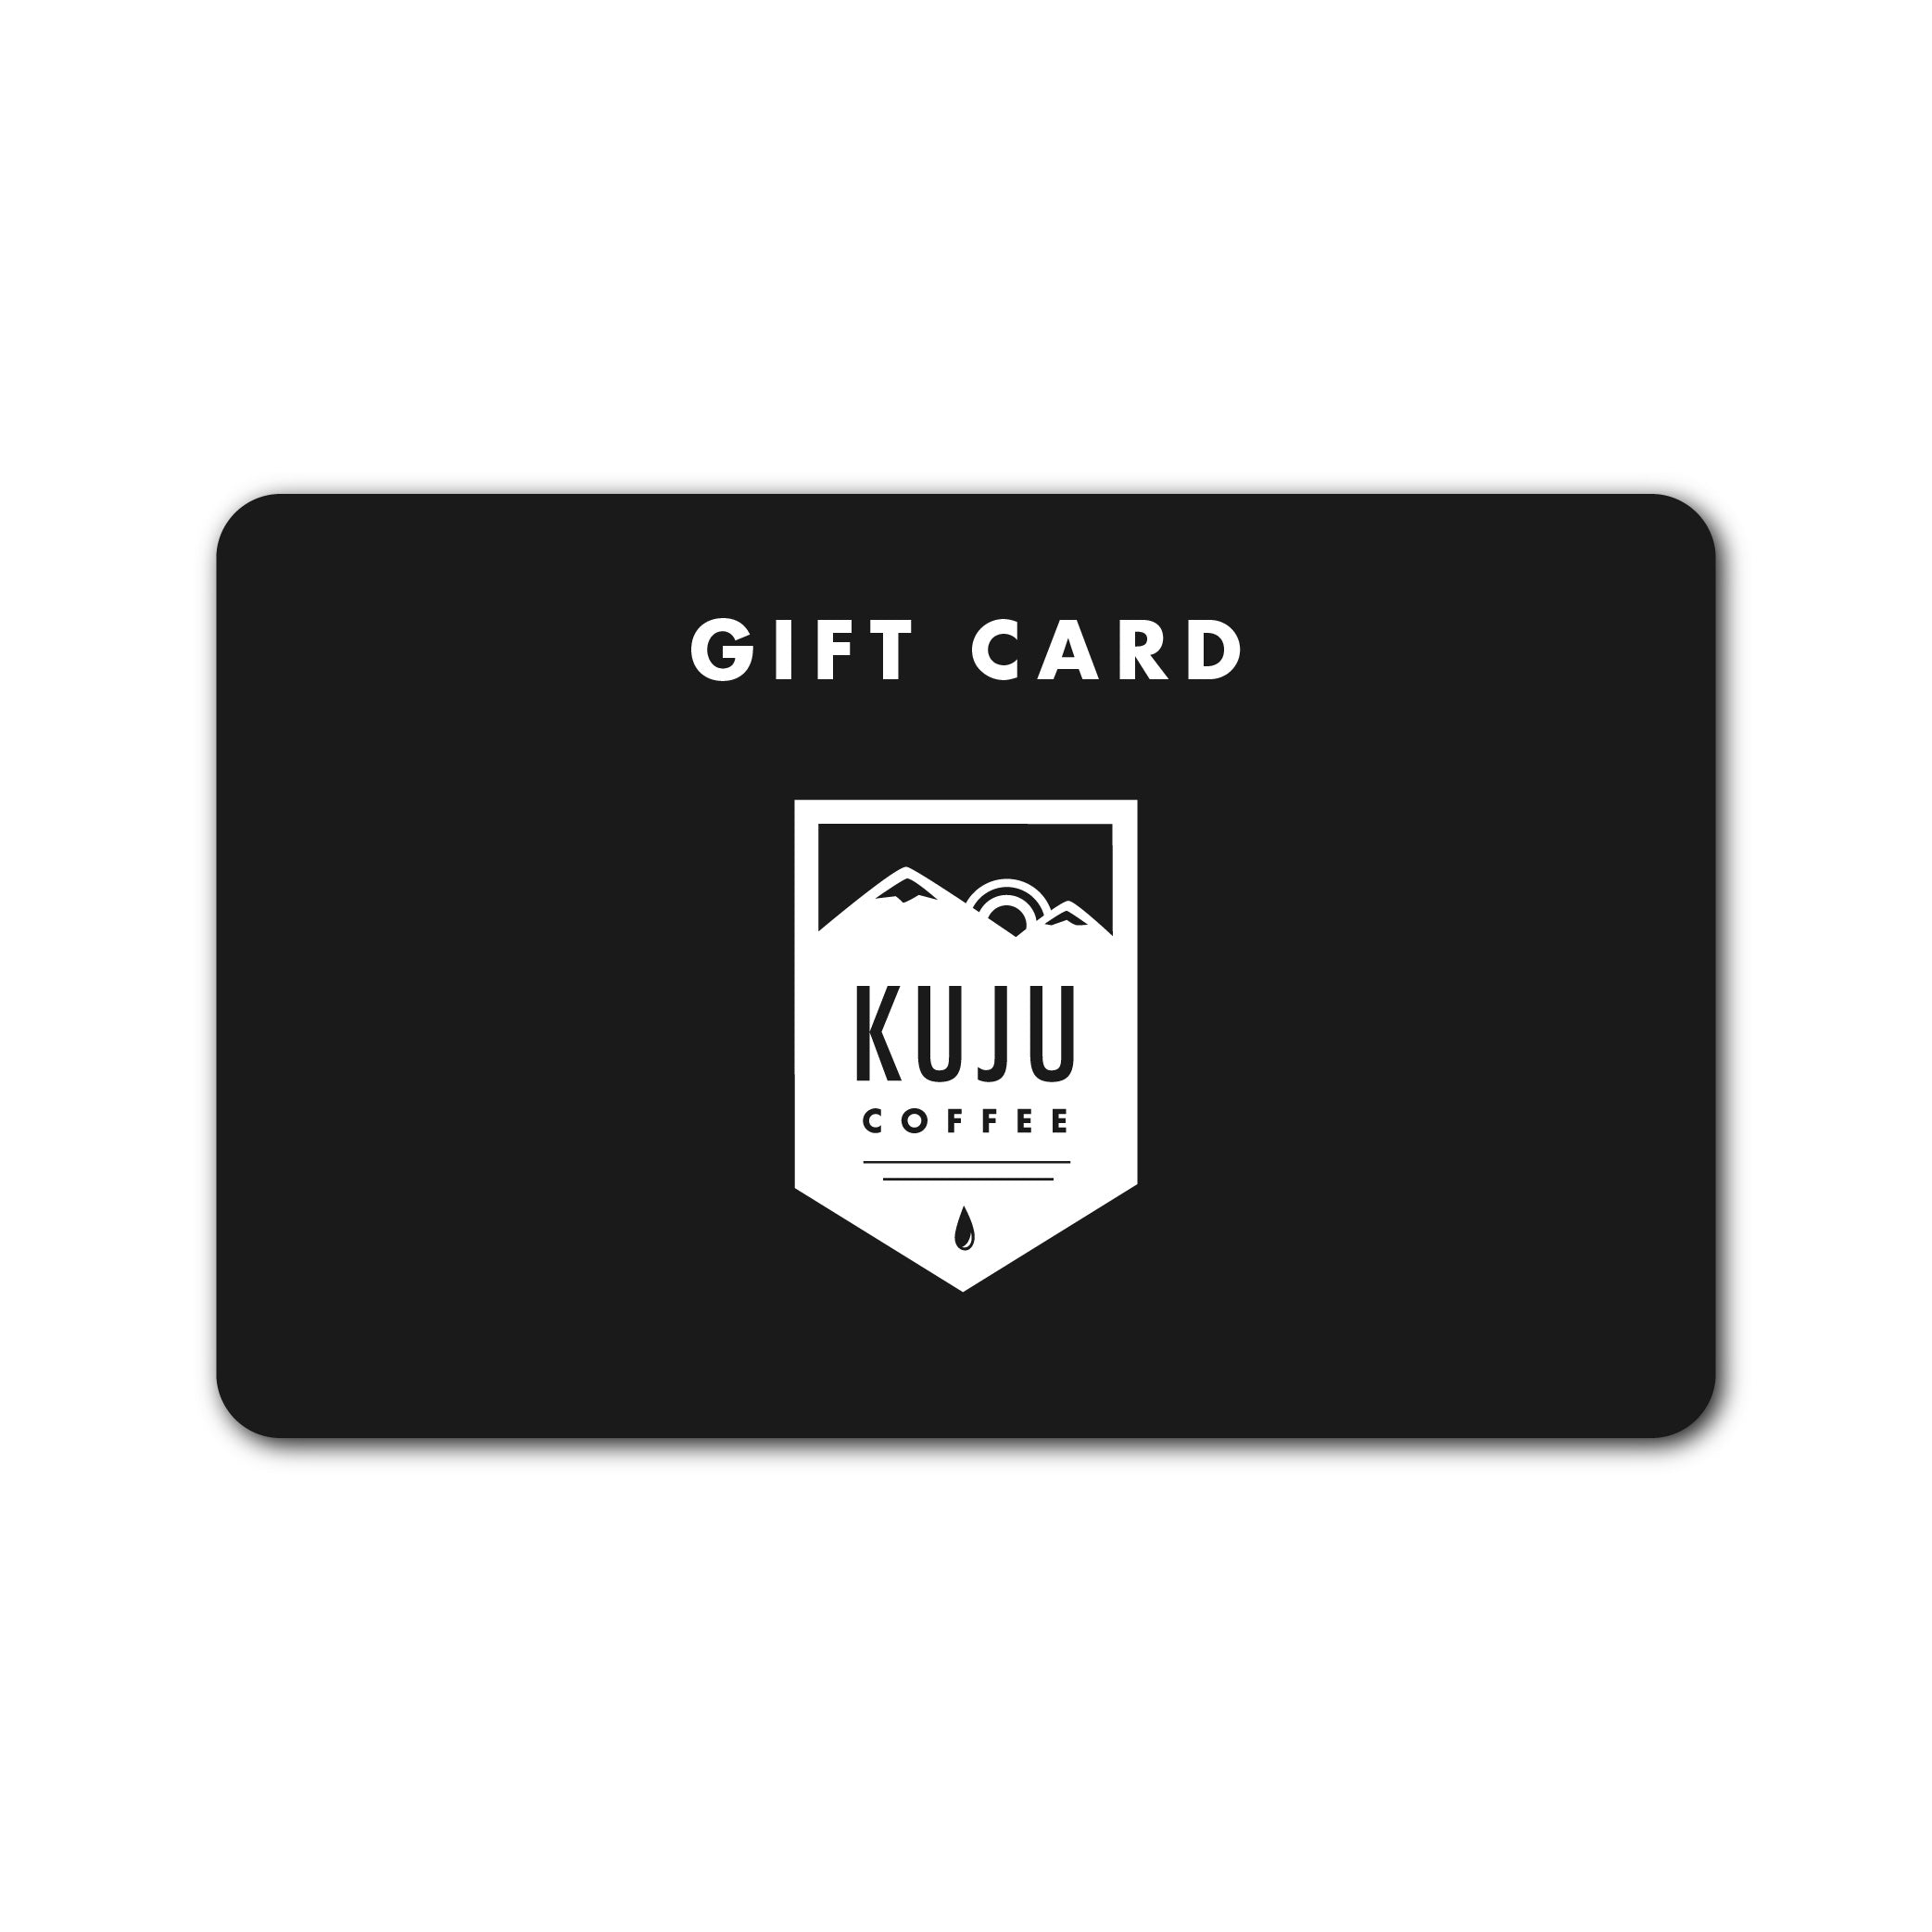 Gift Card - Kuju Coffee